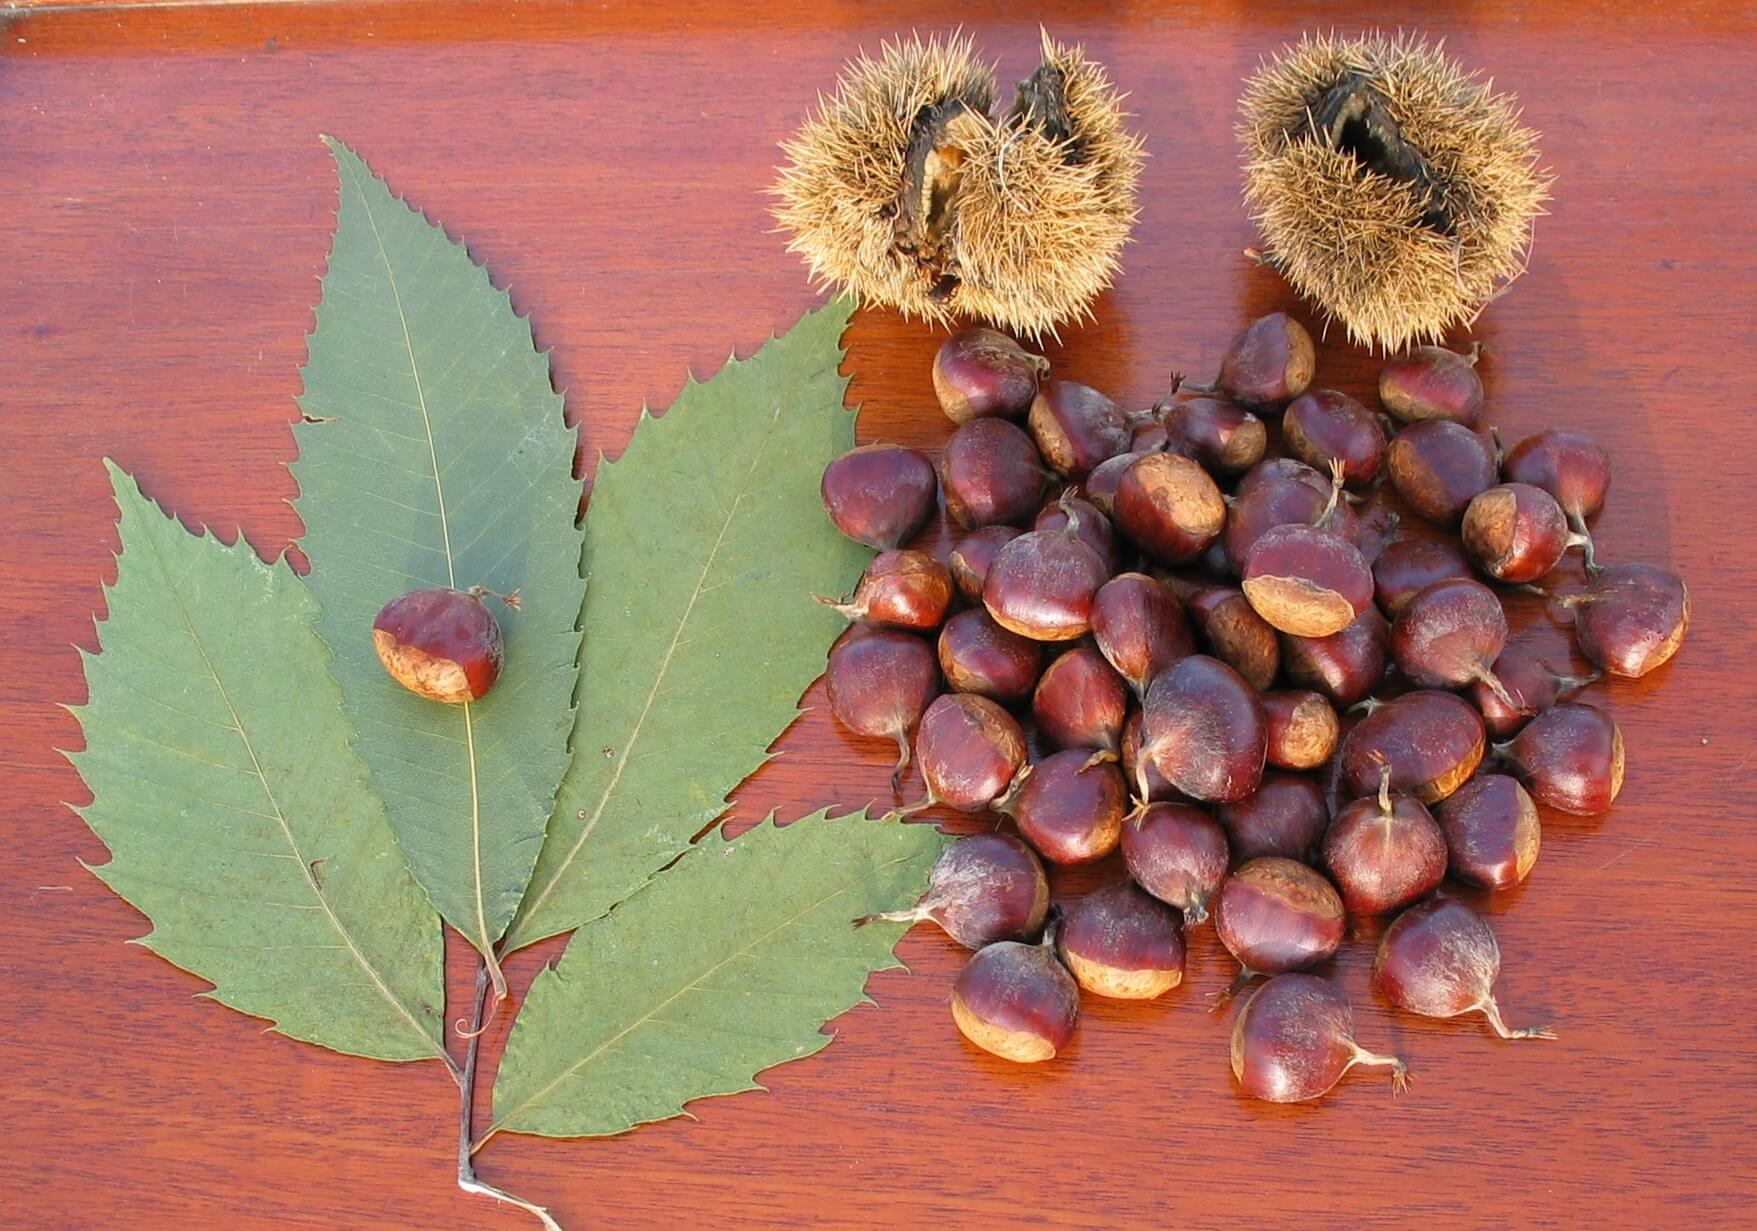 American Chestnut leaves, burrs and nuts